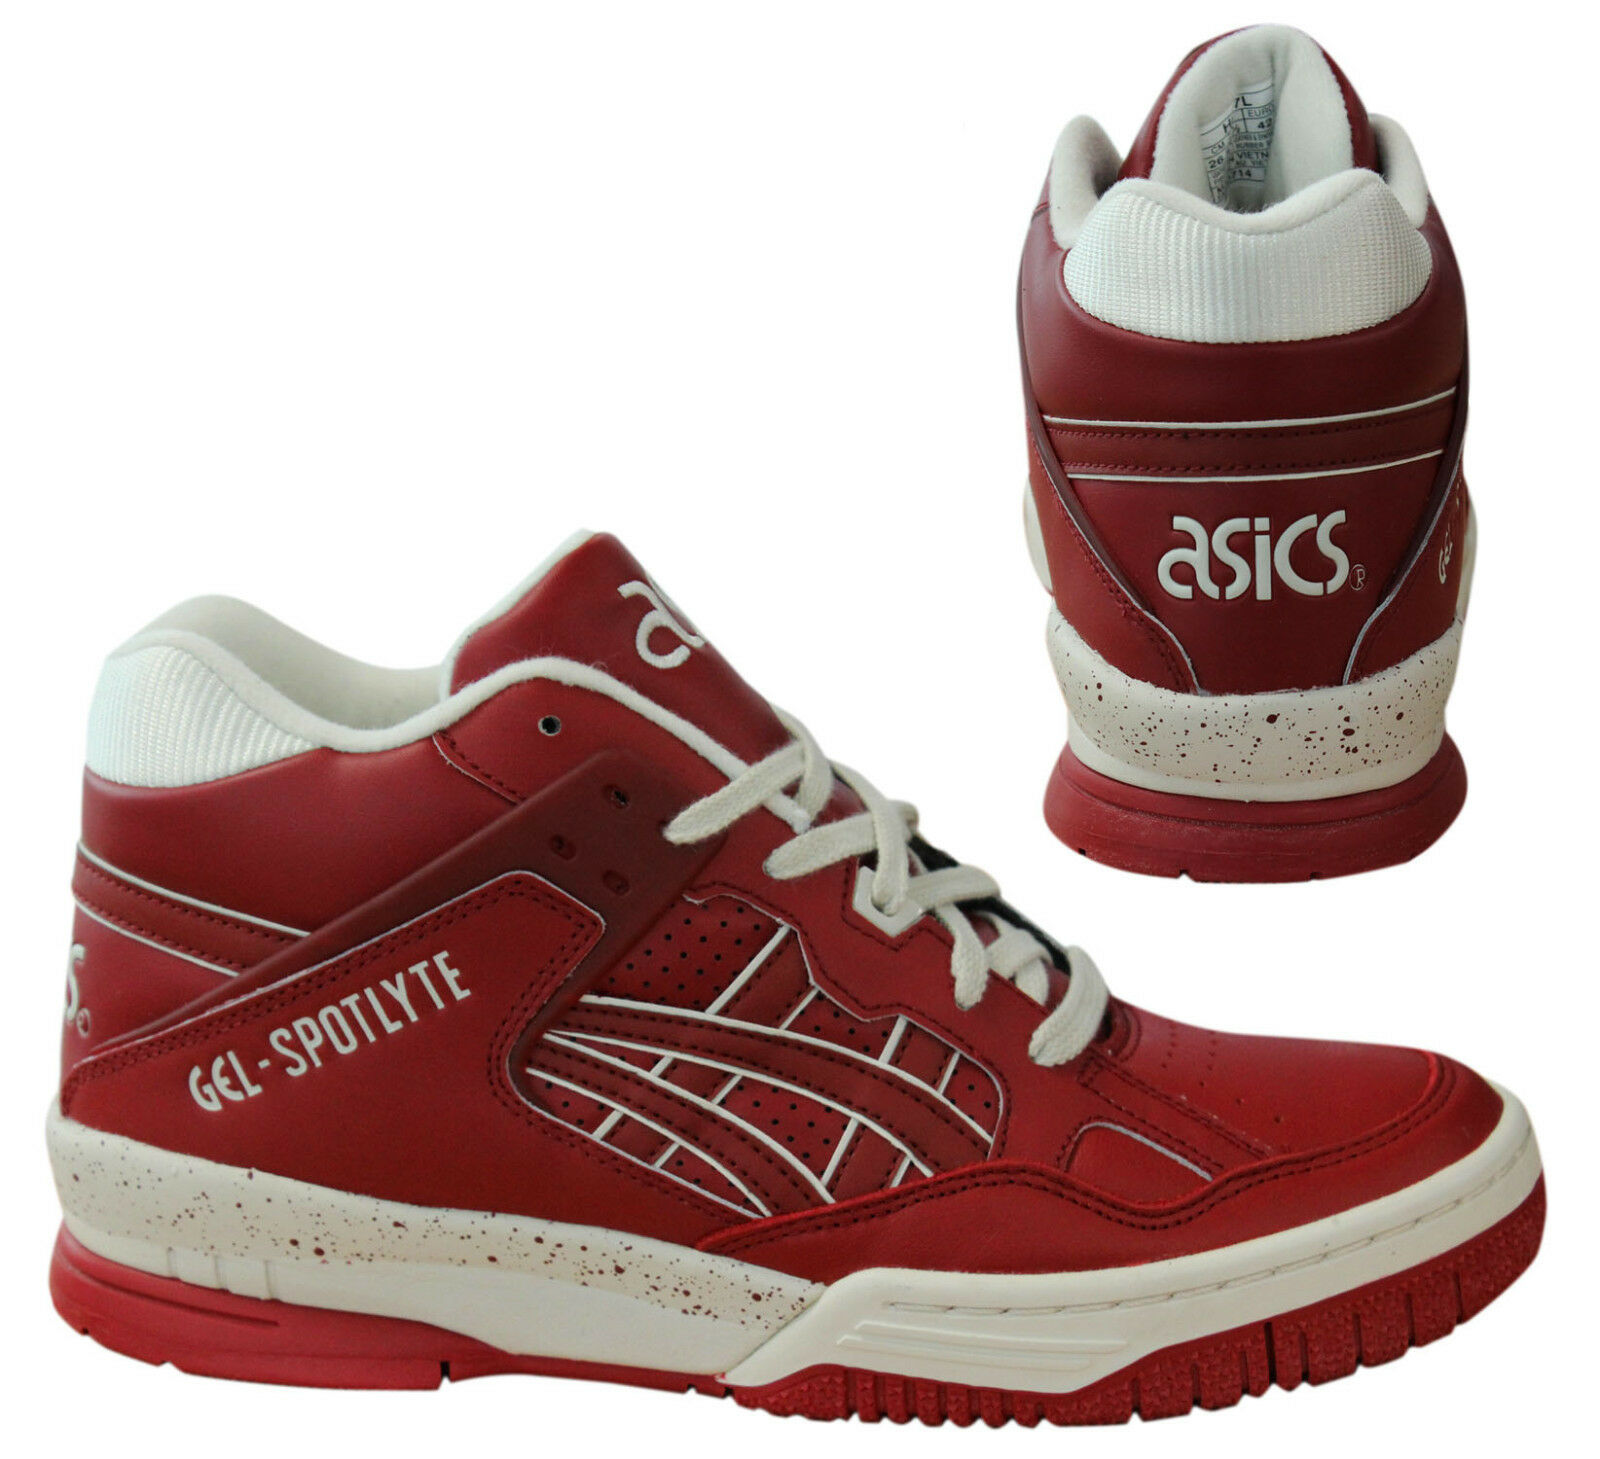 Asics Gel-Spotlyte Mens Hi Top Trainers Lace Up shoes Burgundy H447L 2525 M3